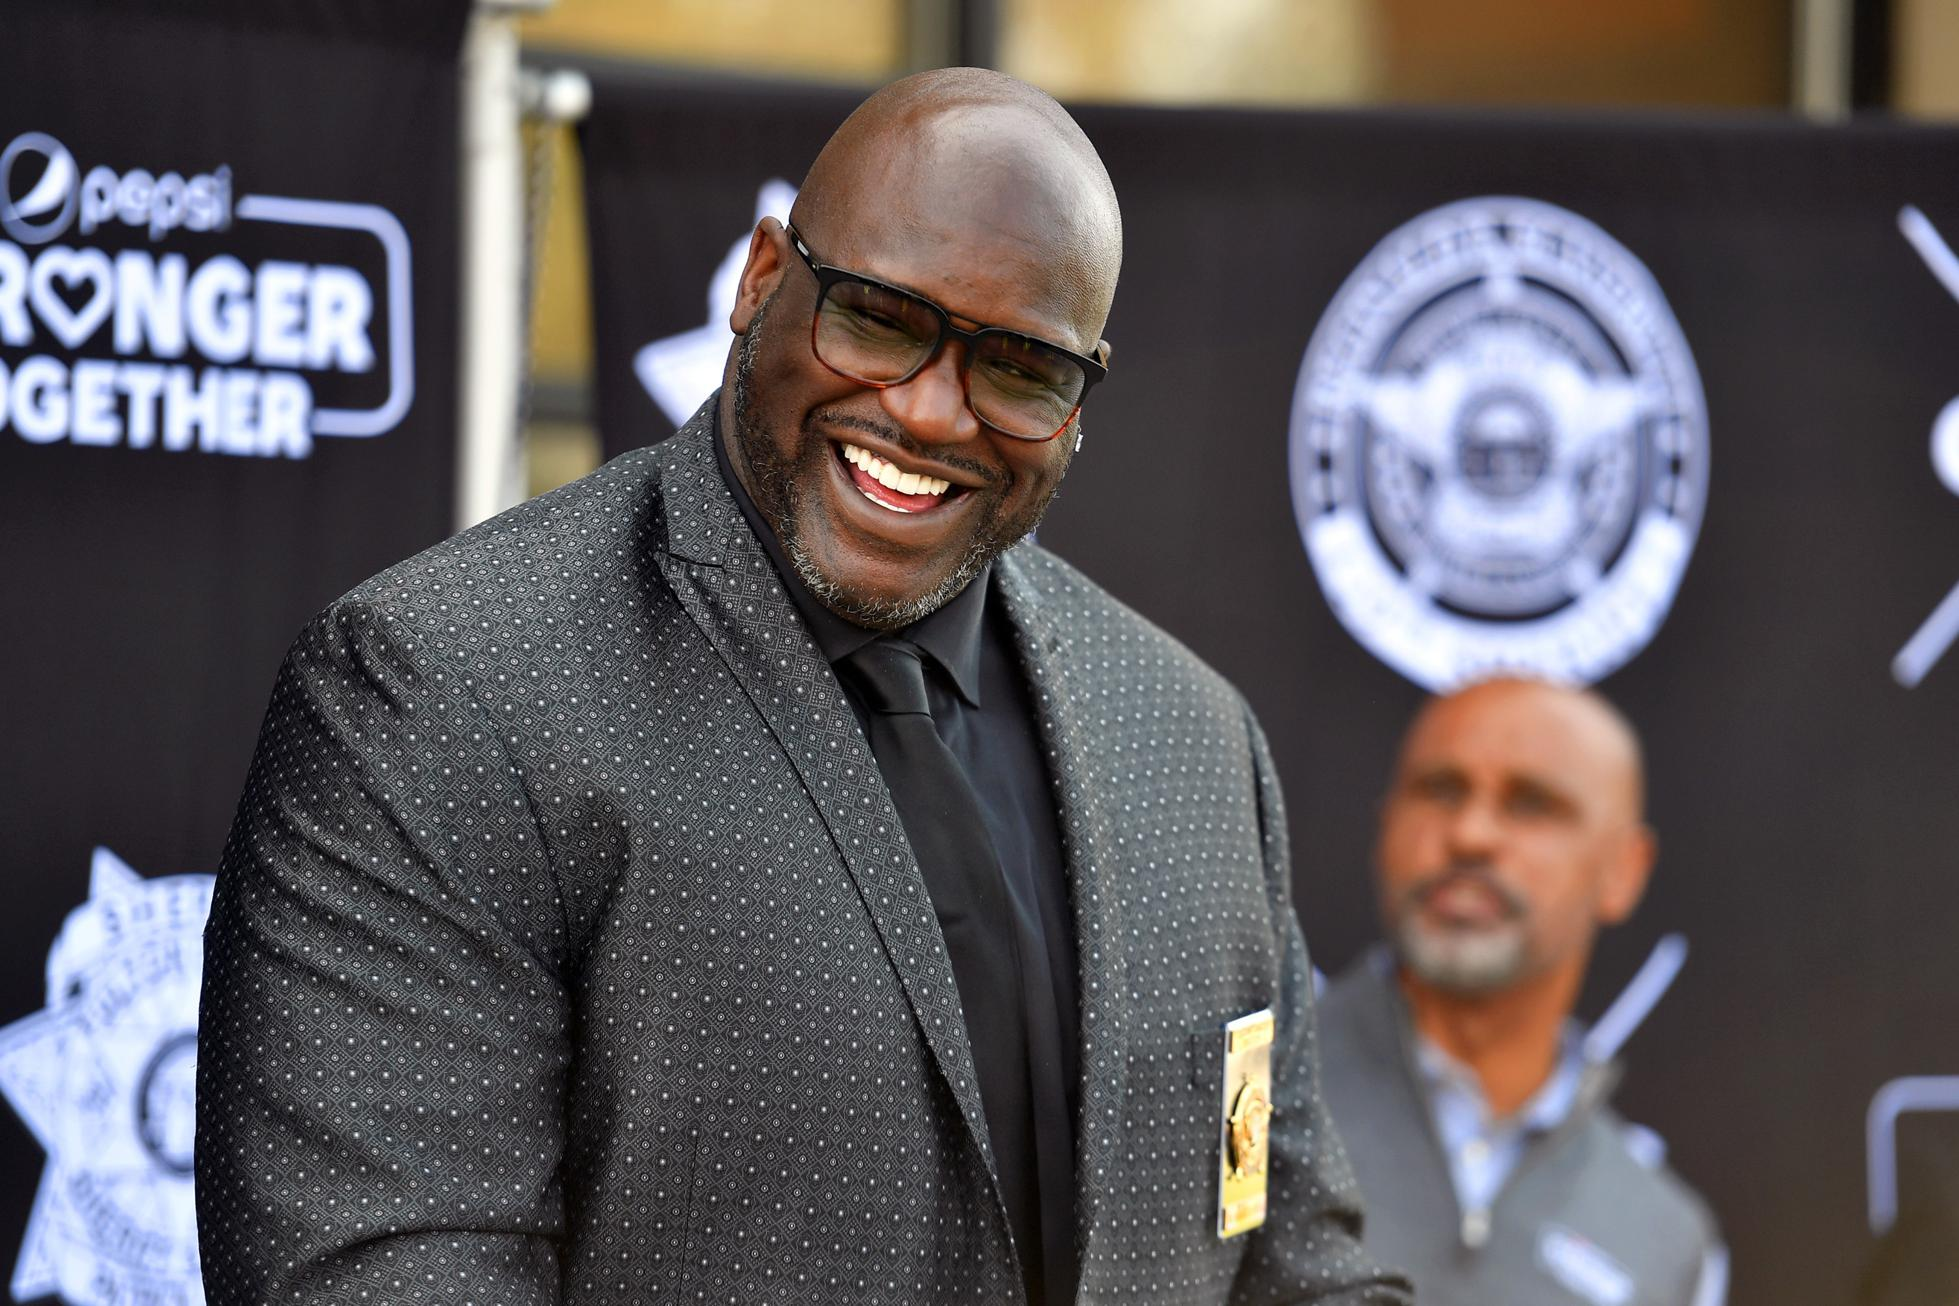 Pepsi Stronger Together, The Close the Gap Foundation & Shaquille O'Neal Announce Atlanta Law Enforcement Training